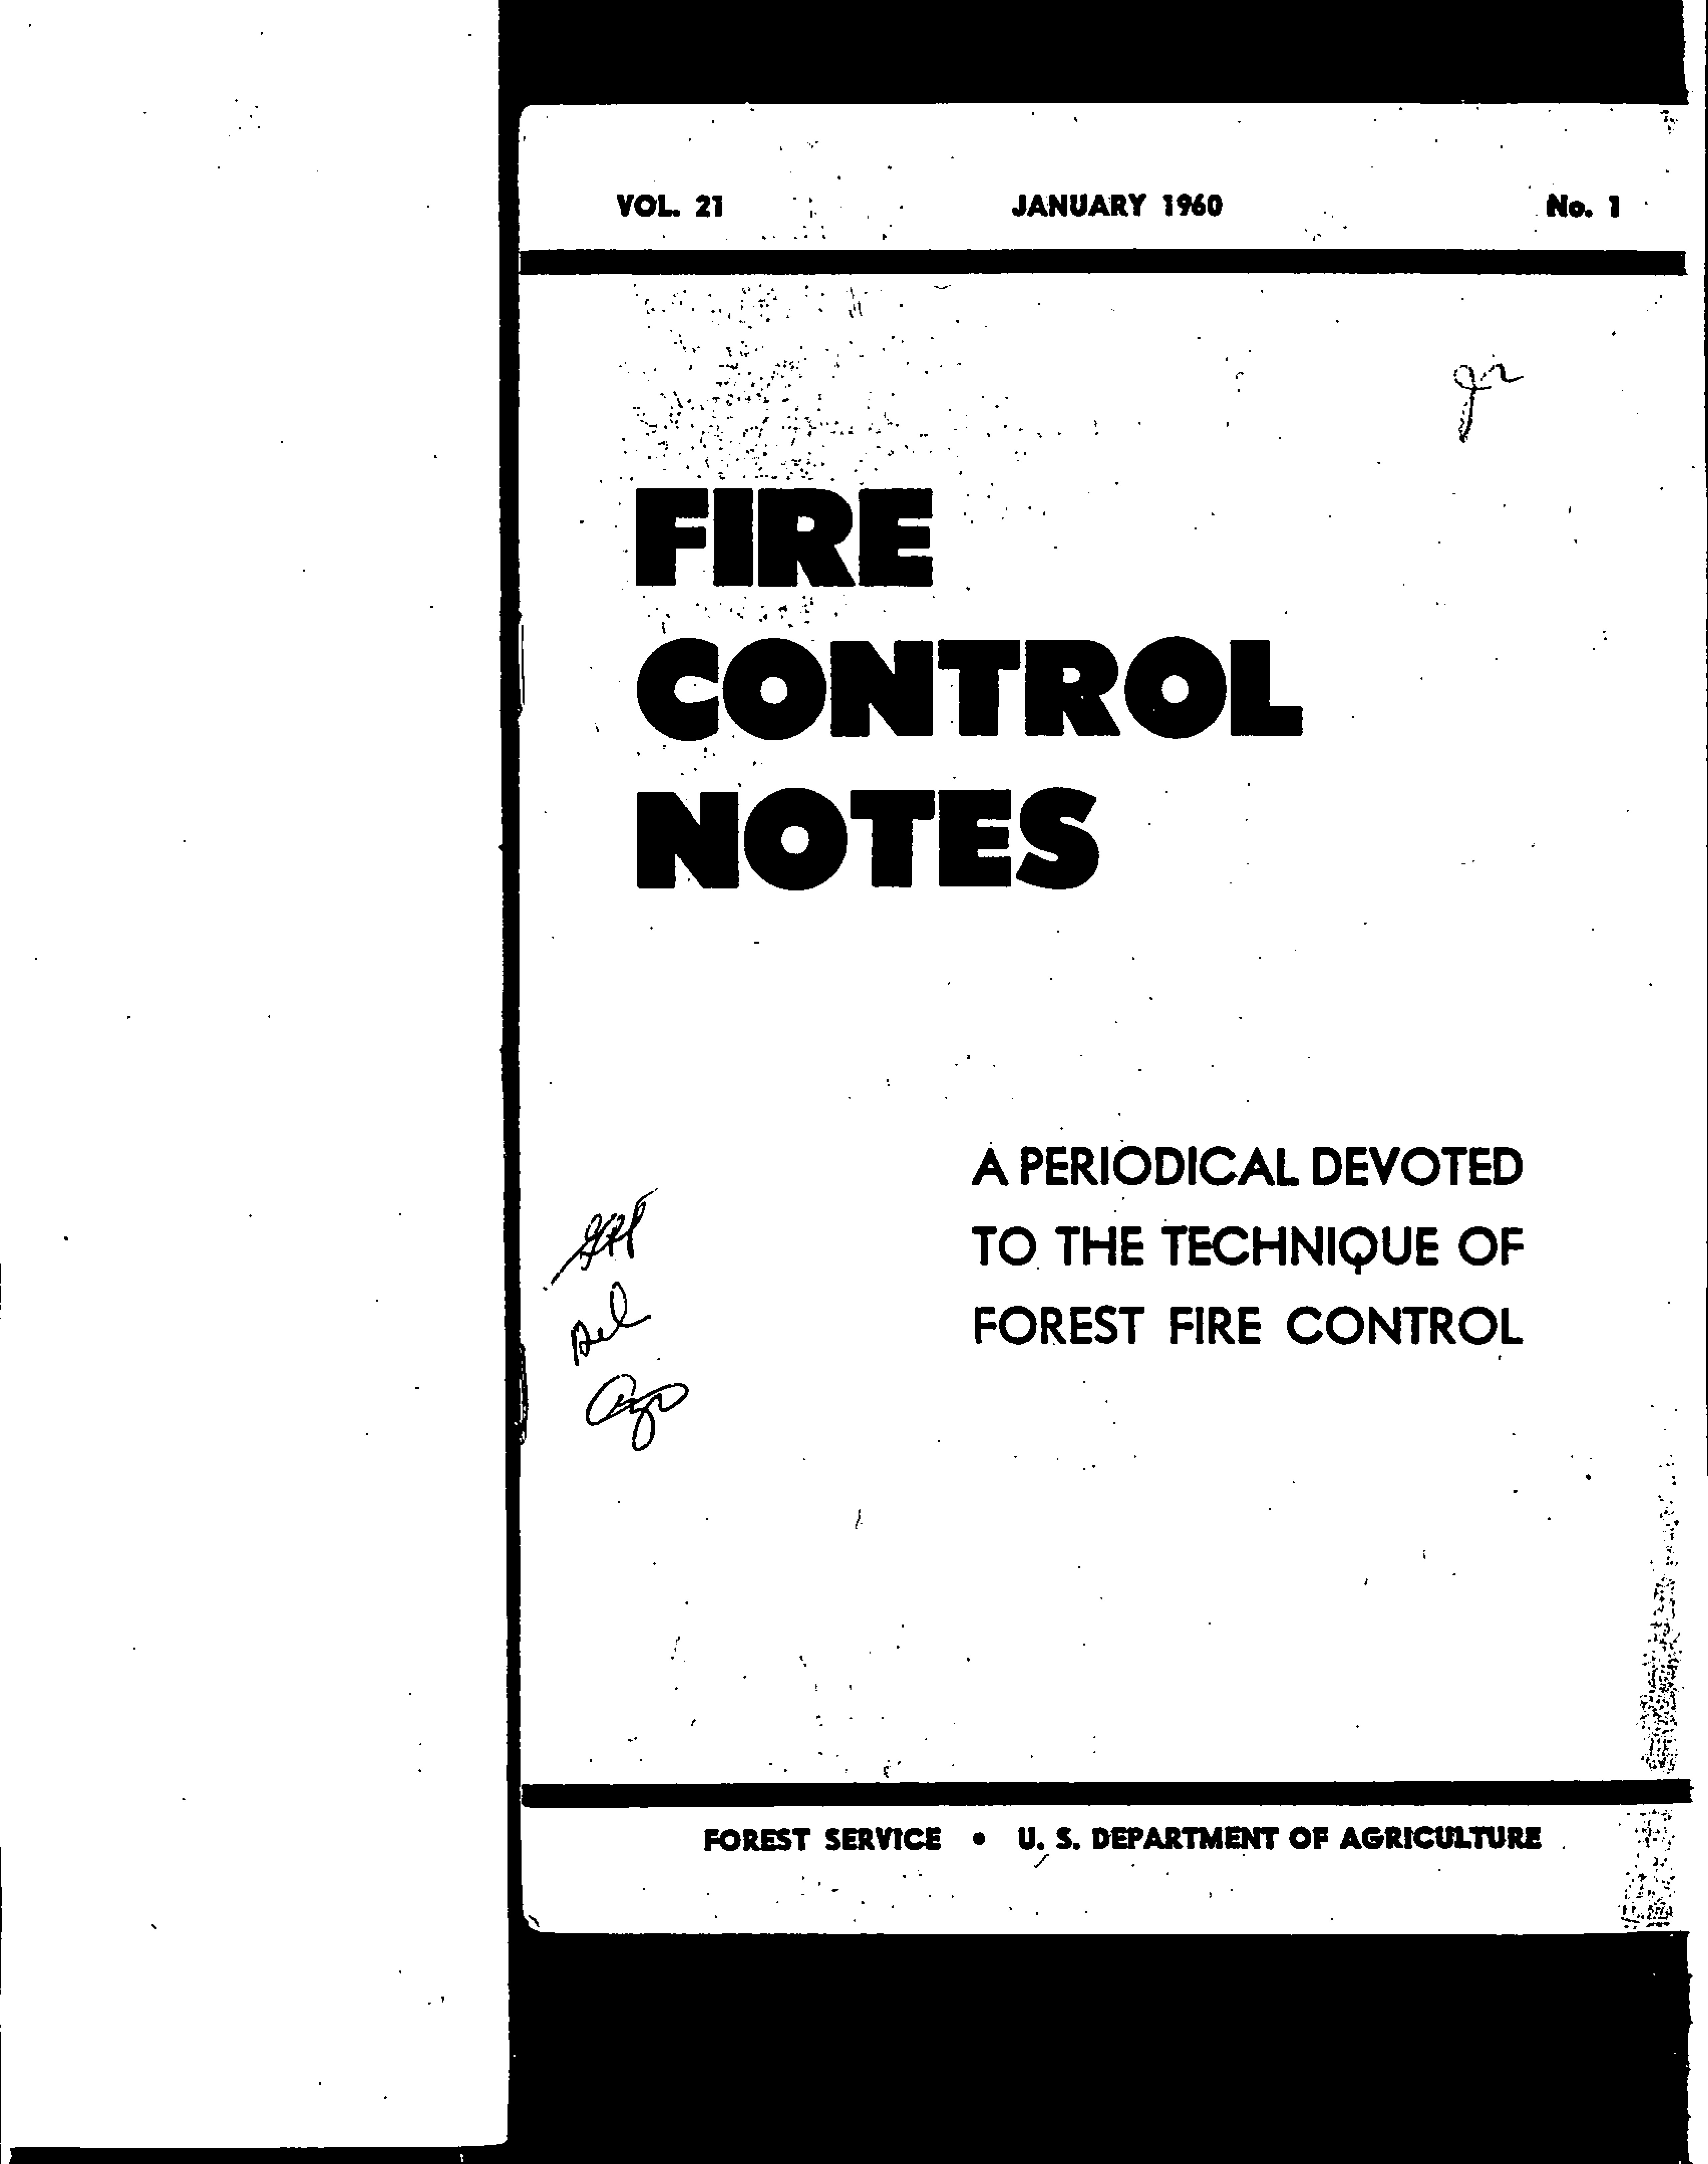 Cover of Fire Management Today Volume 21, Issue 01